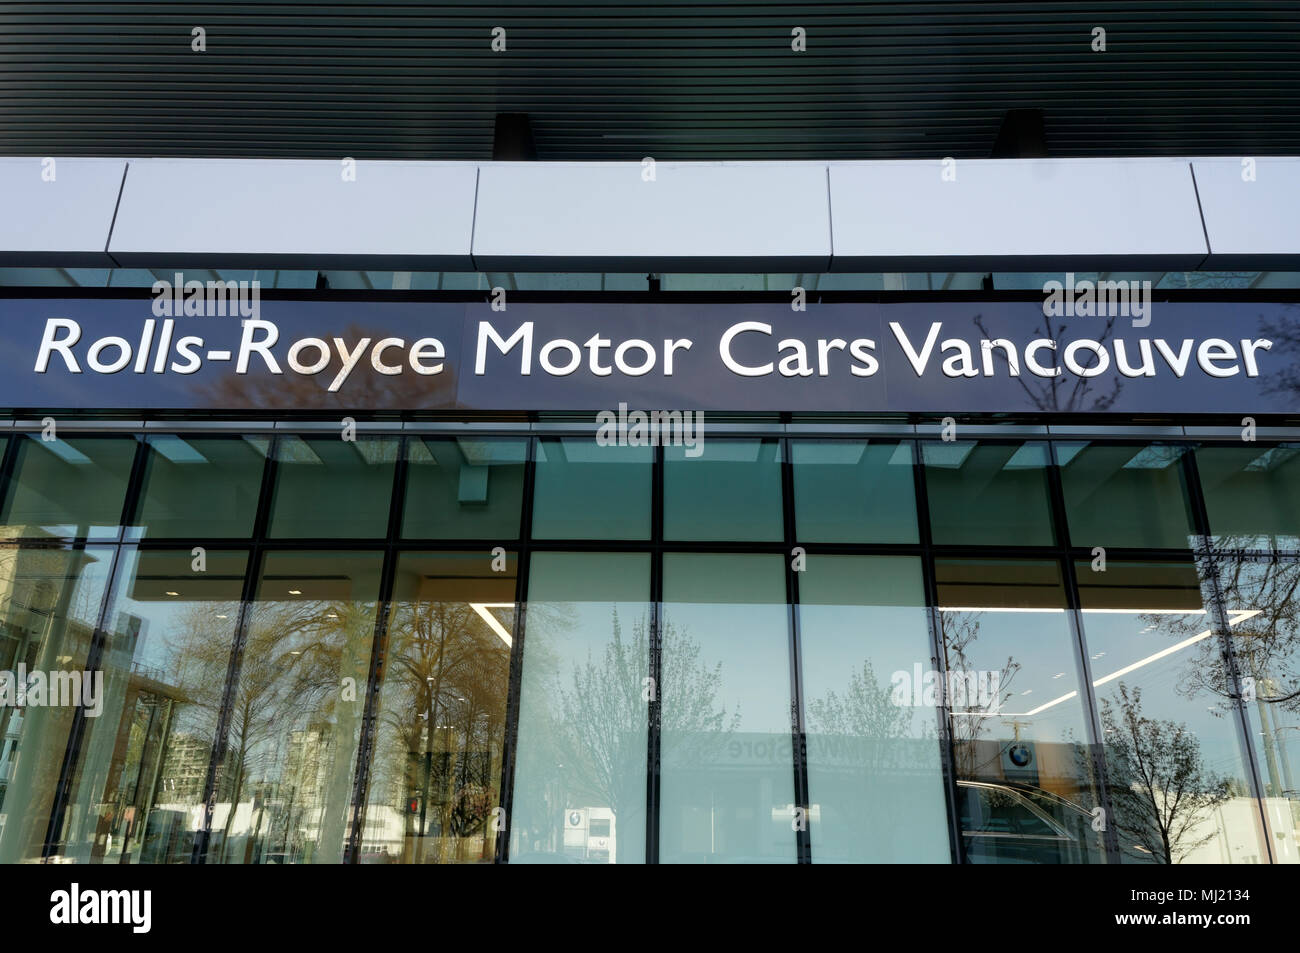 Rolls Royce Motor Cars dealership in Vancouver, BC, Canada - Stock Image